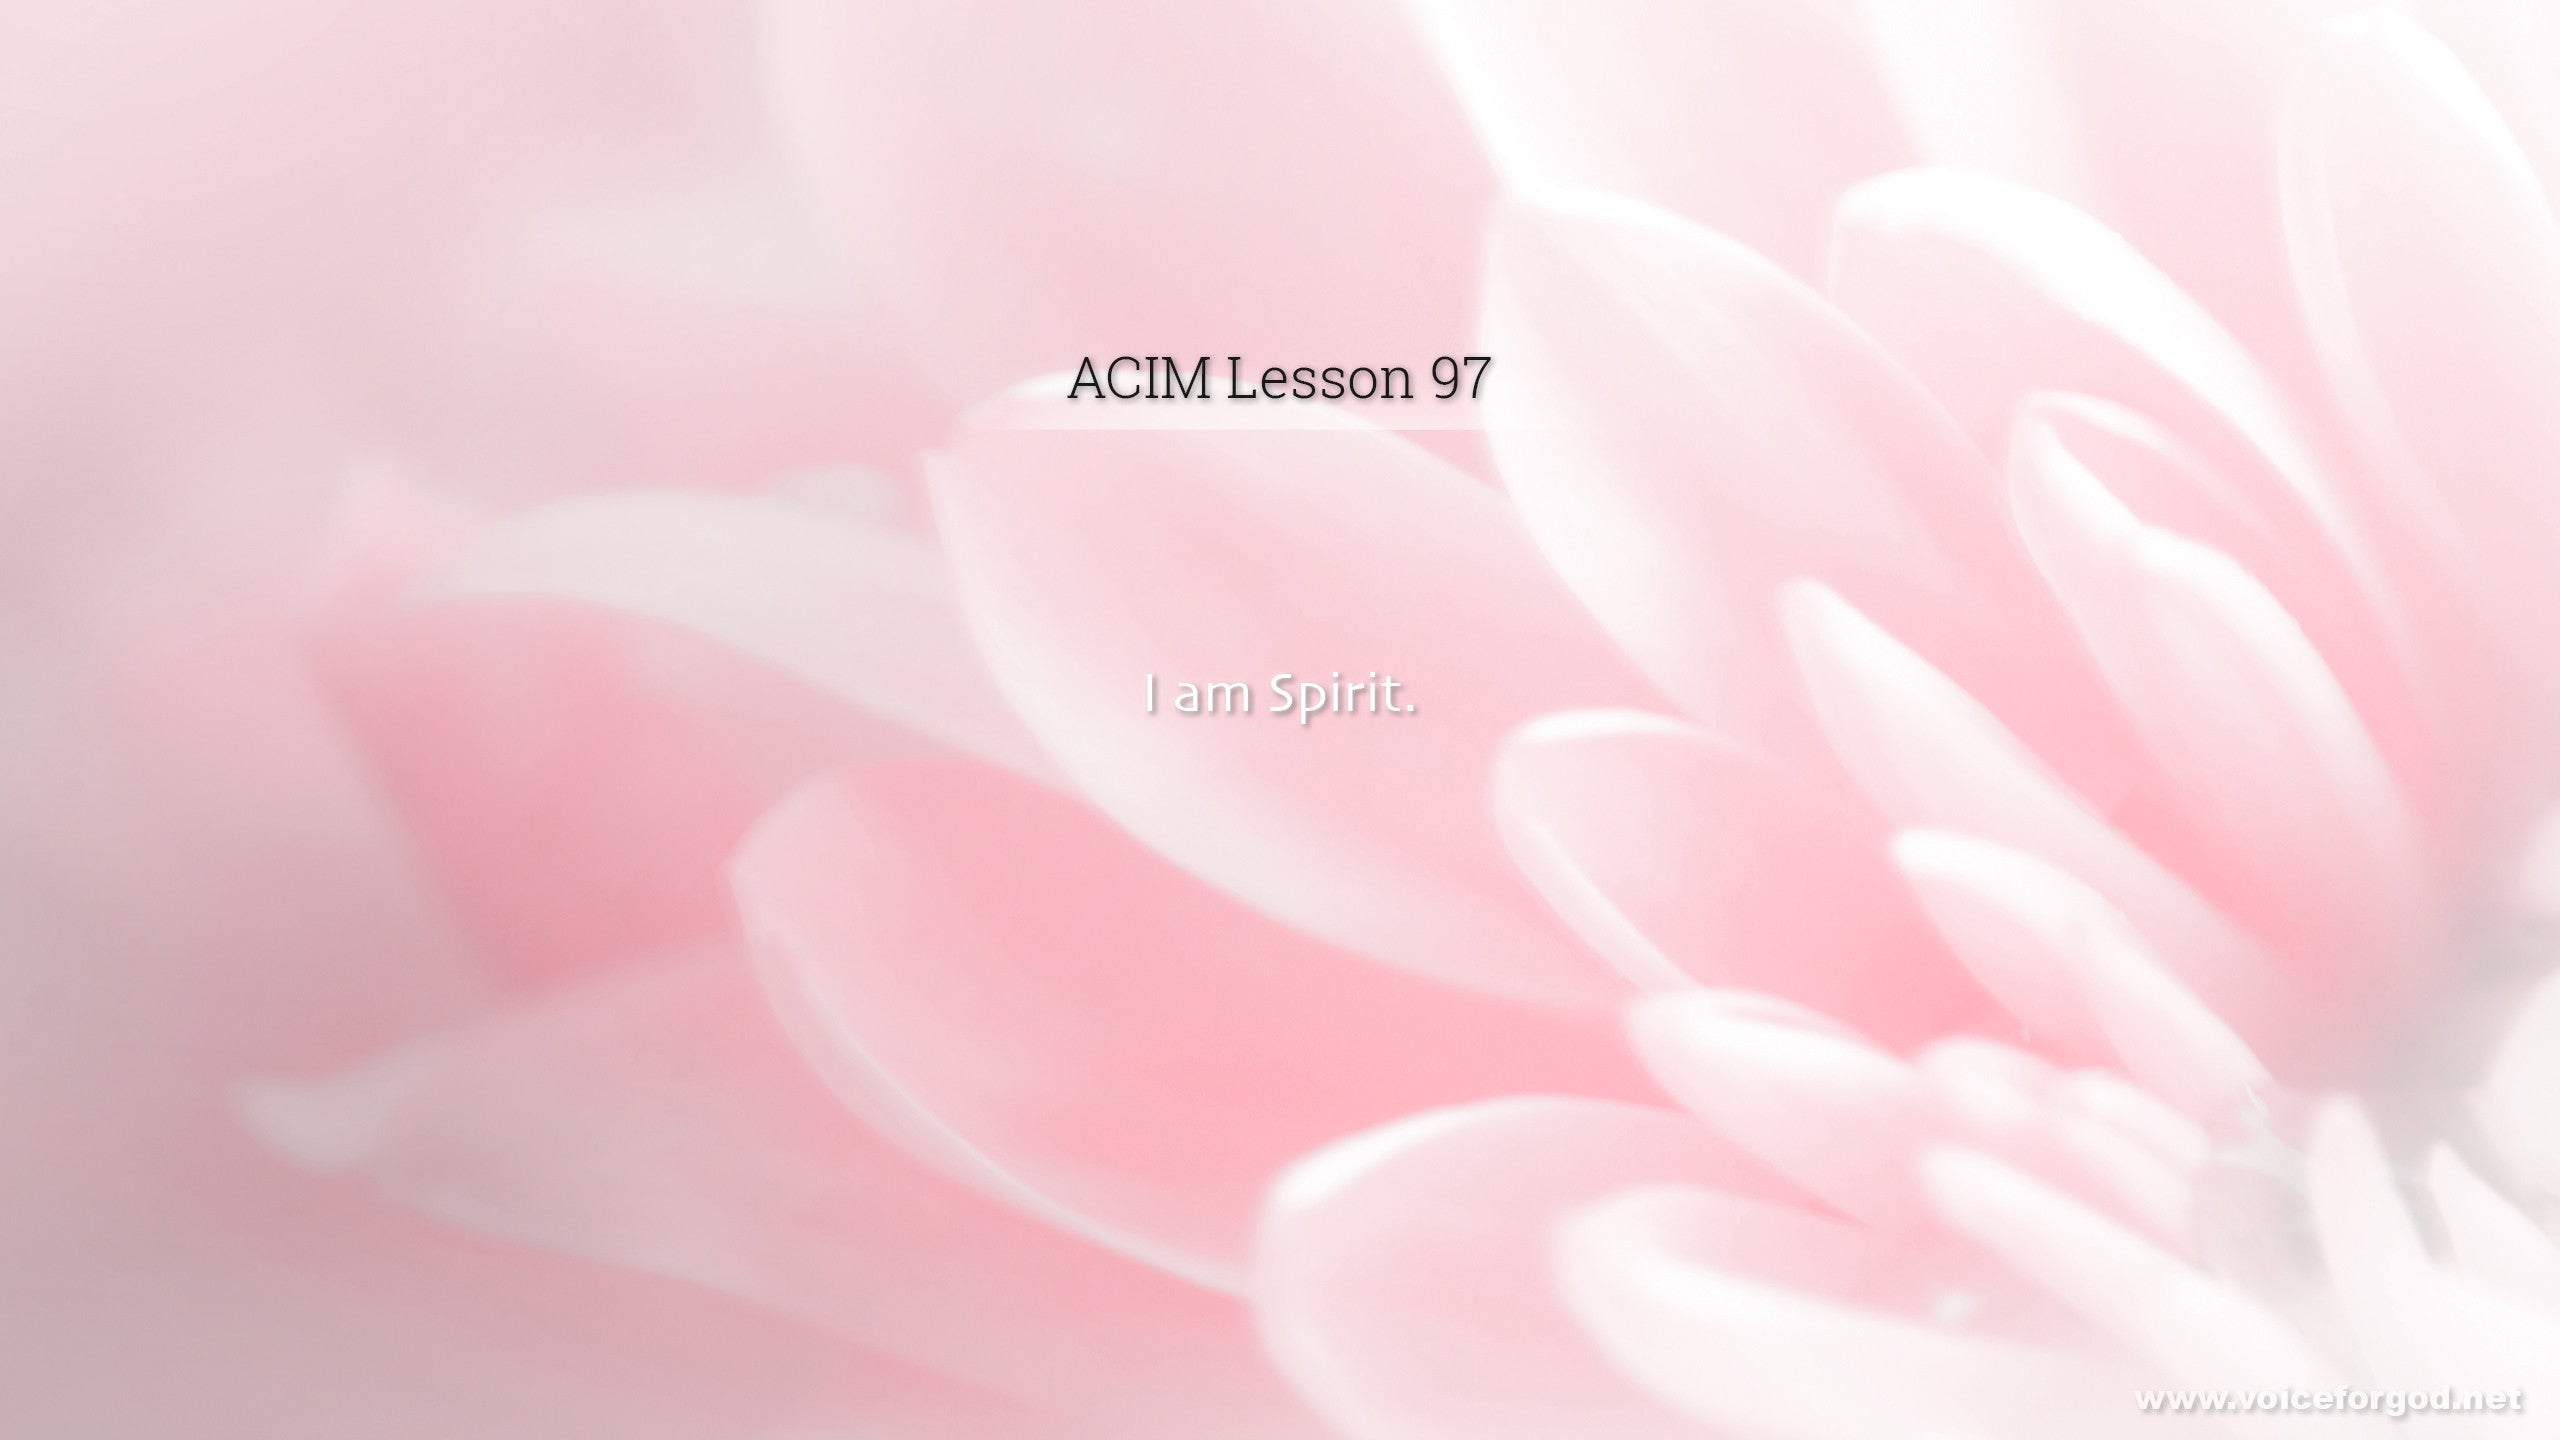 ACIM Lesson 97 - A Course in Miracles Workbook Lesson 97